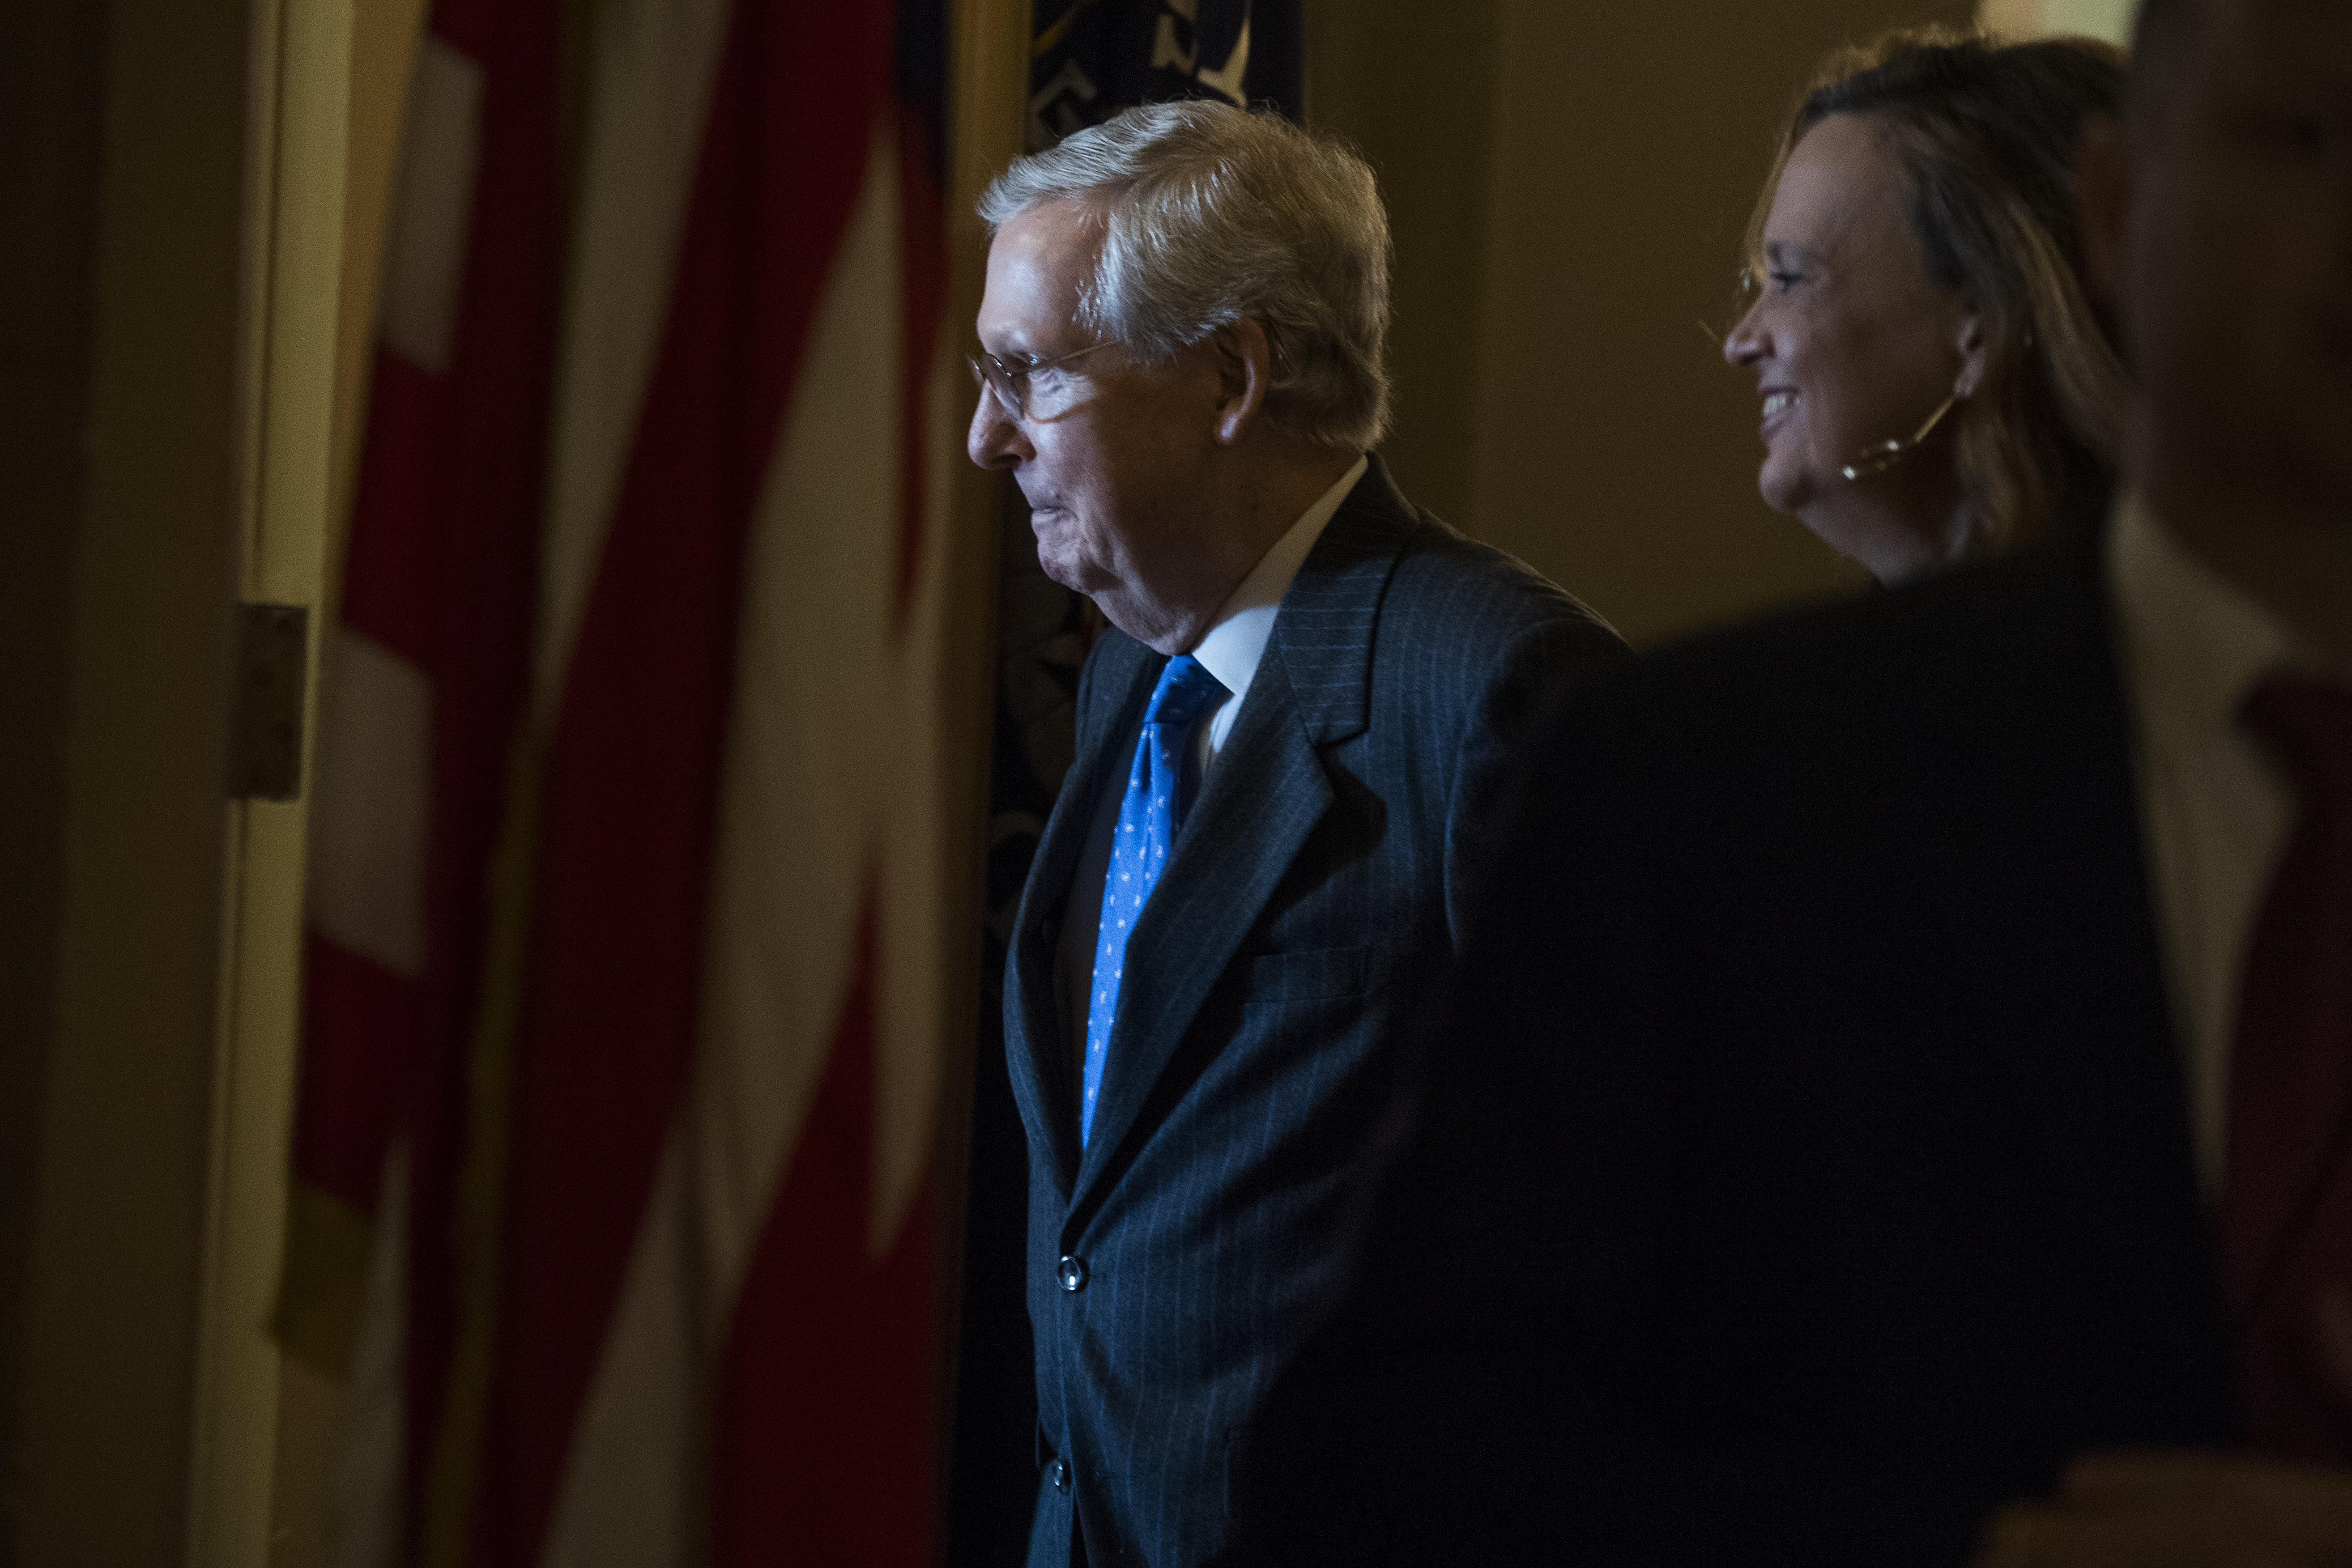 UNITED STATES - NOVEMBER 16: Senate Majority Leader Mitch McConnell, R-Ky., talks with an aide in the Capitol after the House passed the GOP's tax reform bill on November 16, 2017. (Photo By Tom Williams/CQ Roll Call)